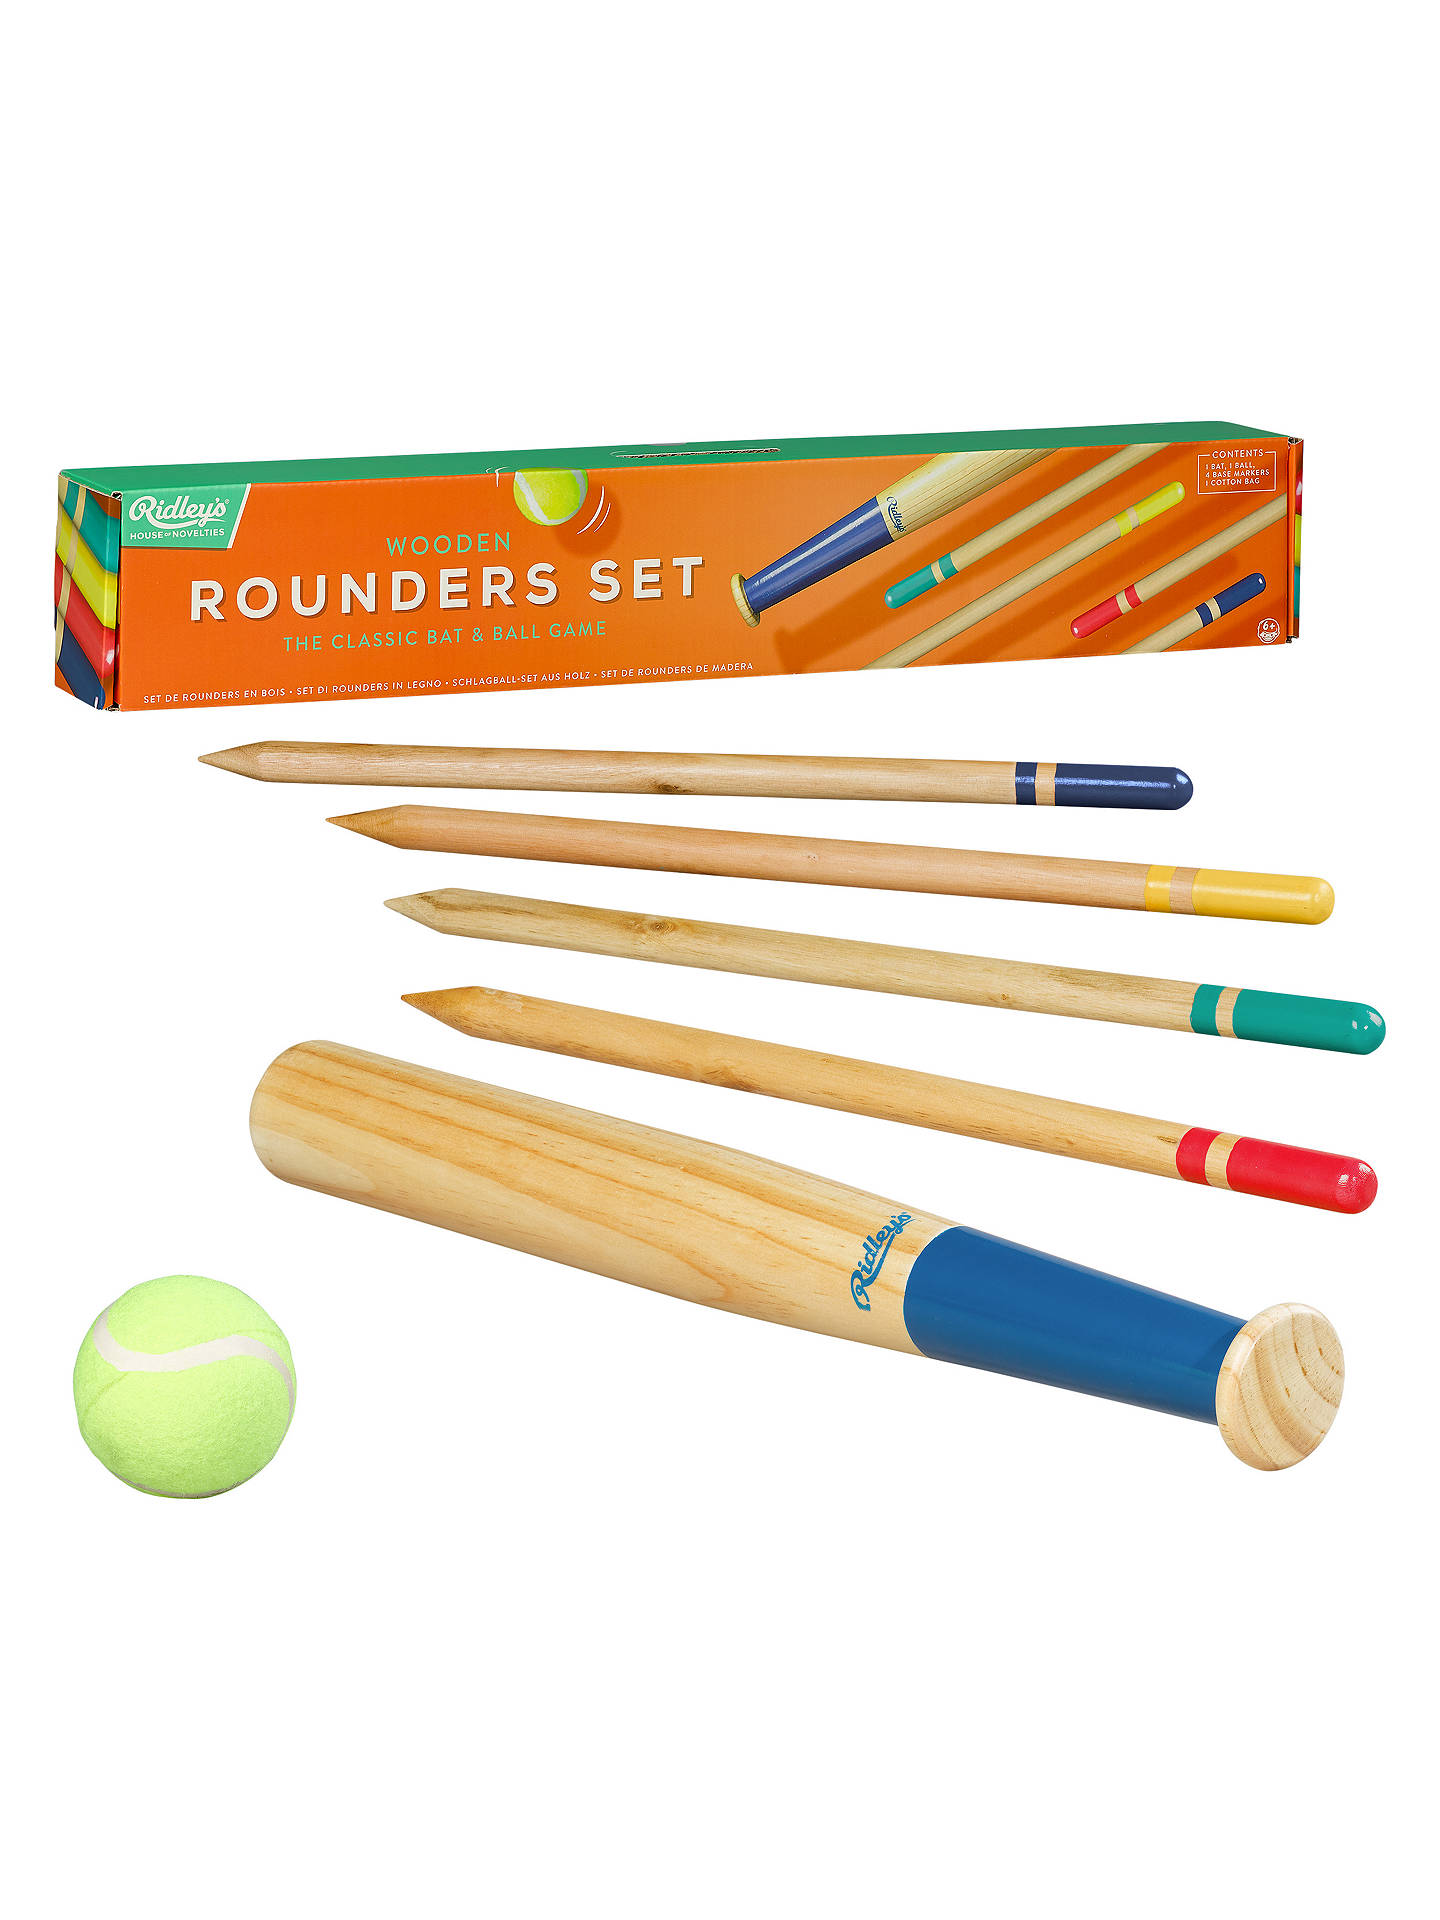 Buy Ridleys Rounders Set Online at johnlewis.com